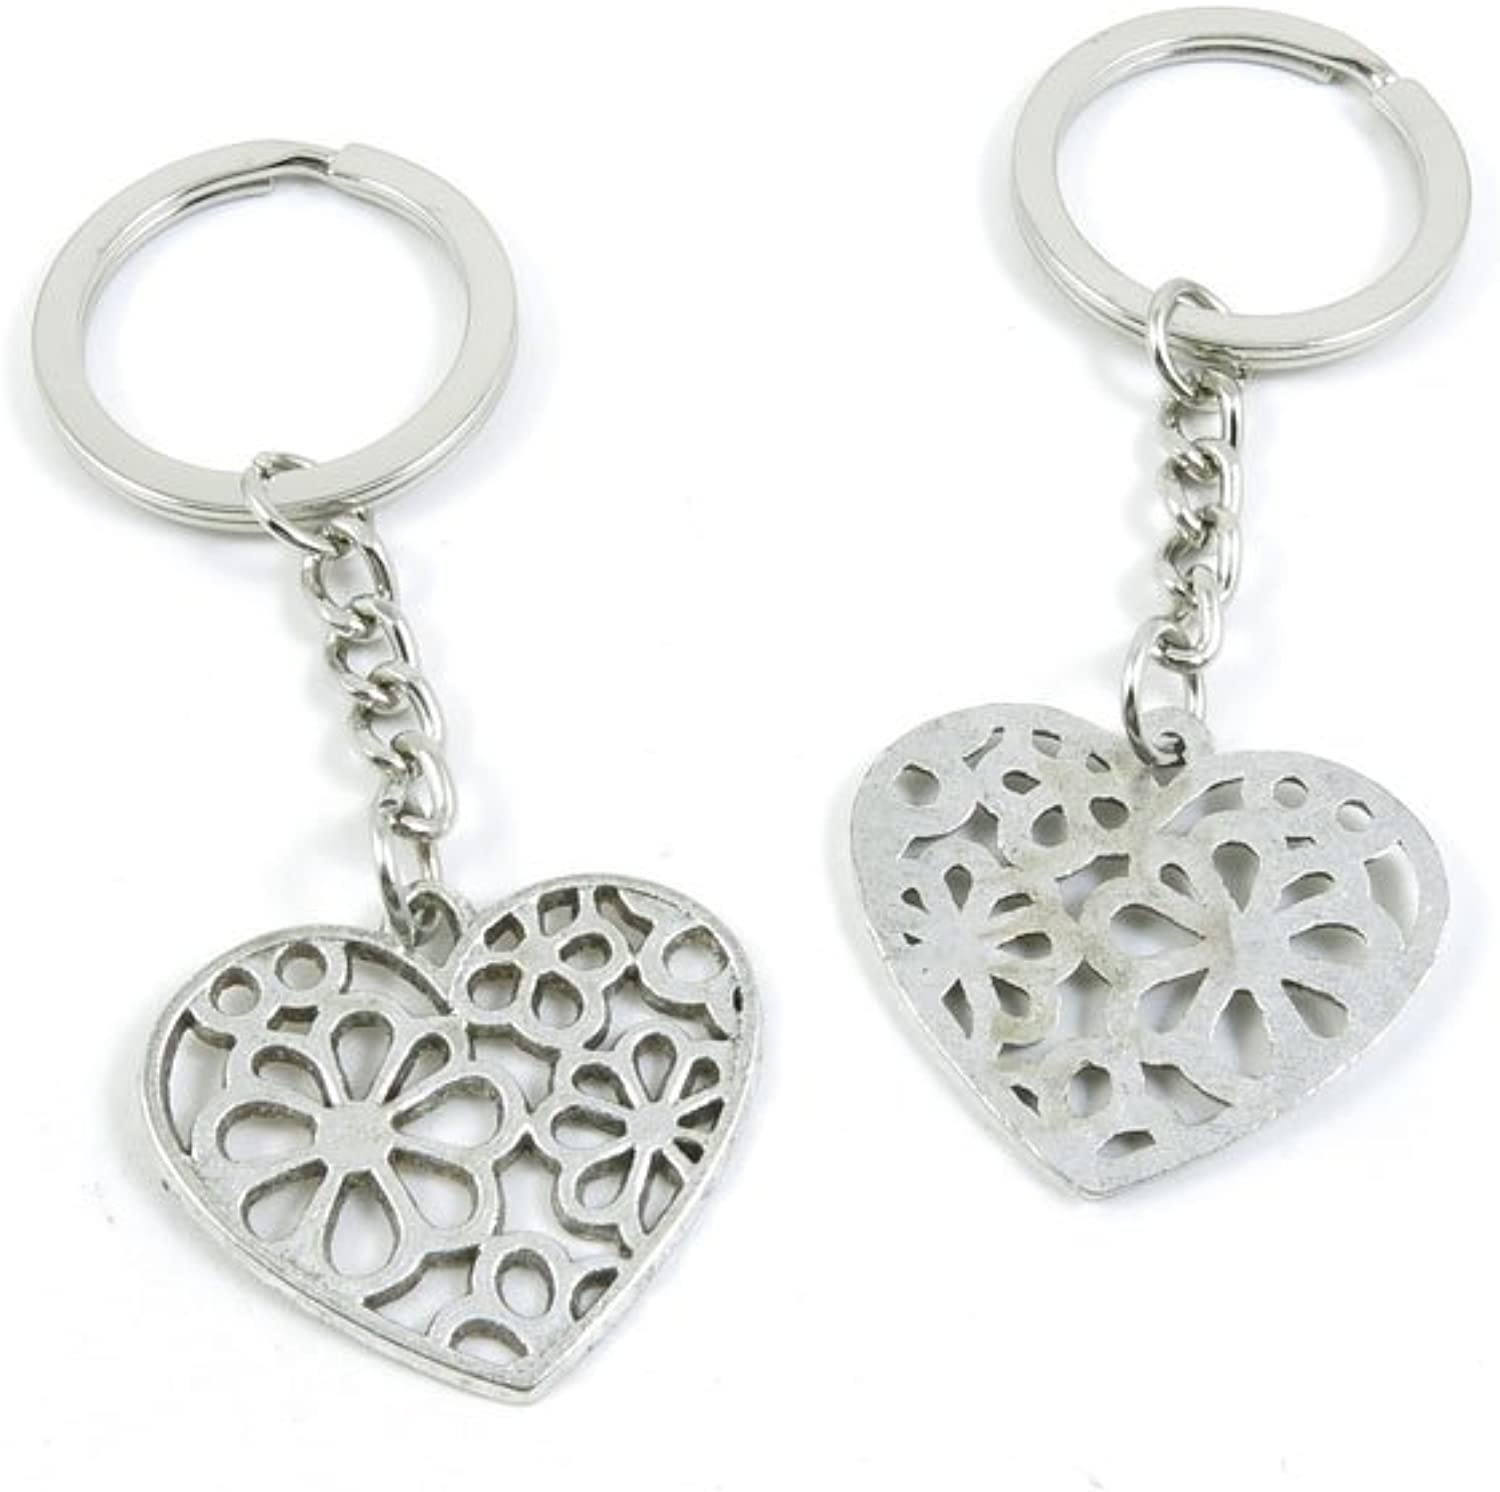 160 Pieces Fashion Jewelry Keyring Keychain Door Car Key Tag Ring Chain Supplier Supply Wholesale Bulk Lots M1BR6 Flower Heart